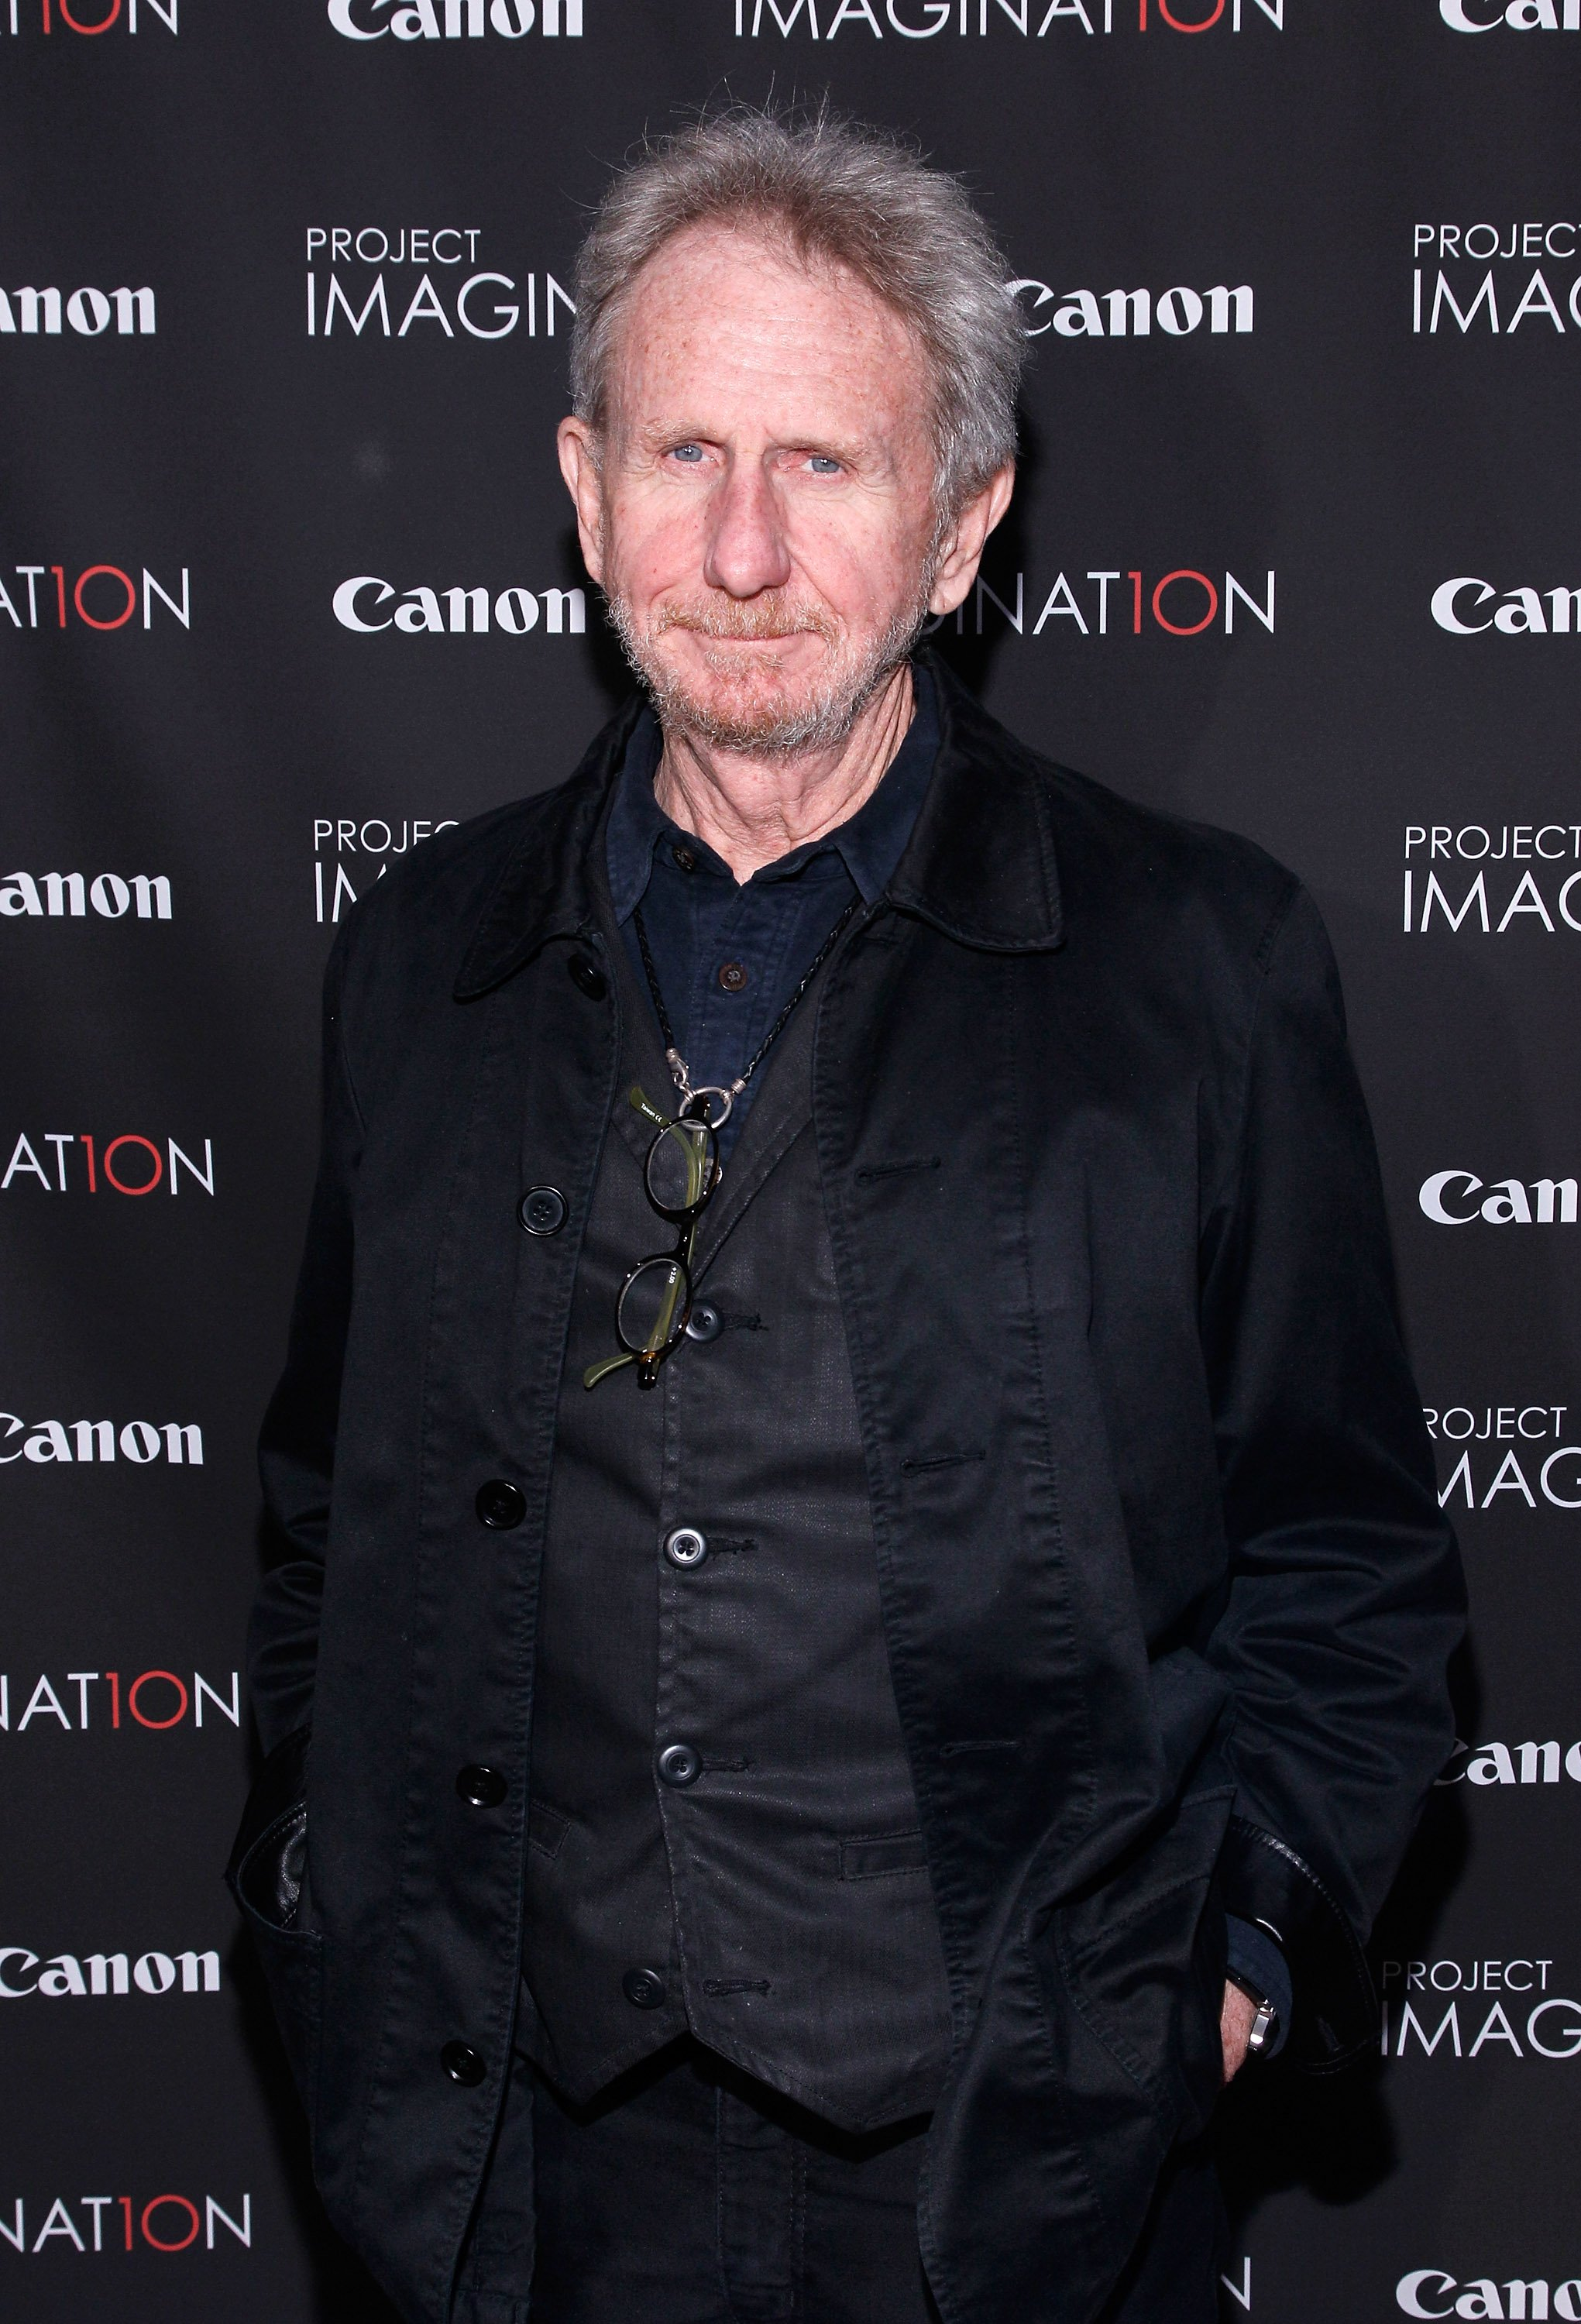 Rene Auberjonois at the Project Imaginat10n Film Festival on December 5, 2013 in New York City | Photo: Brian Ach/Getty Images